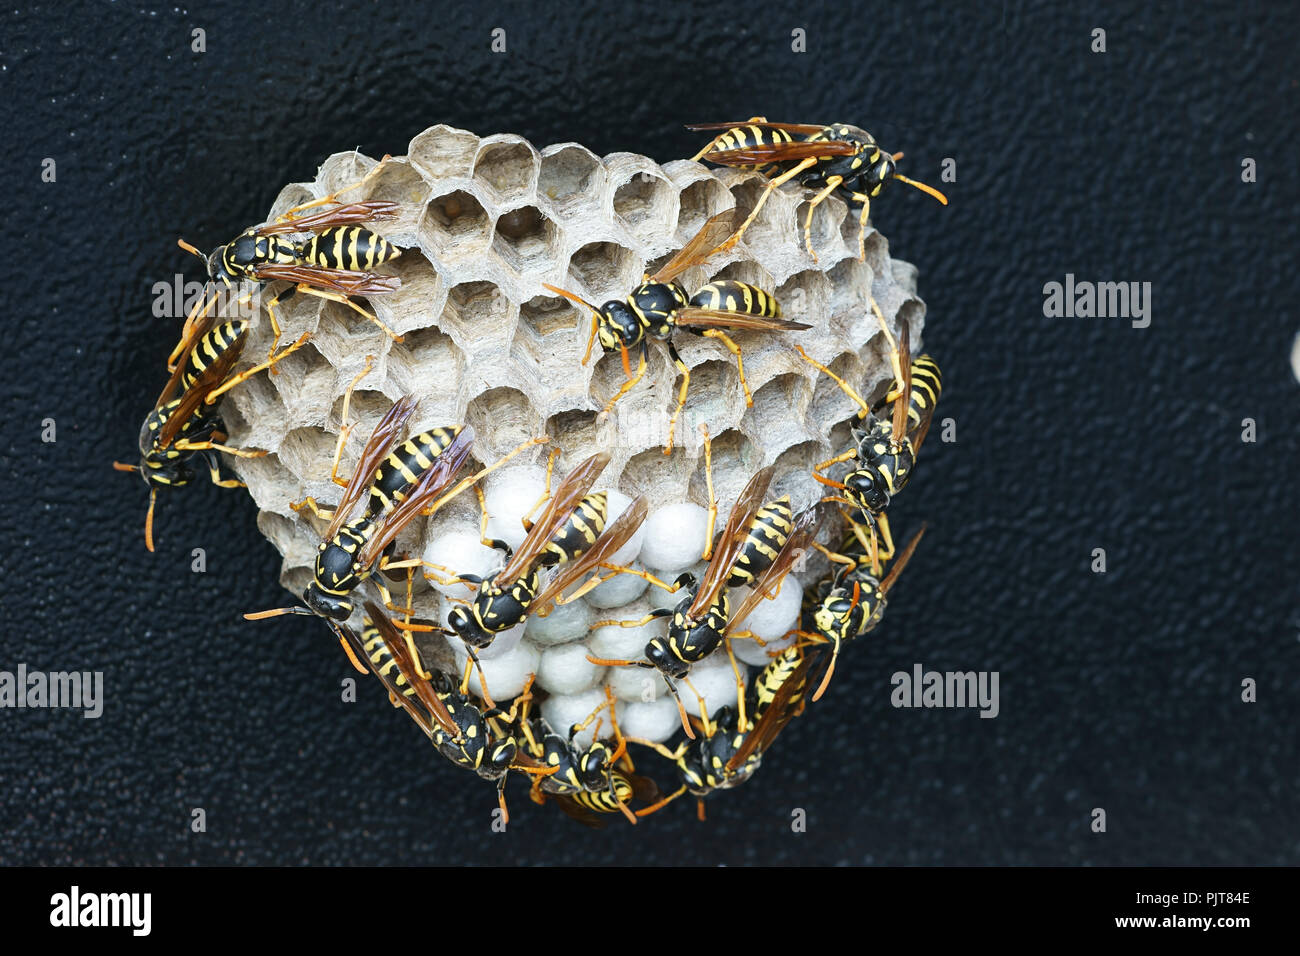 Wespennest Synonym Insect Nest Box Stockfotos Insect Nest Box Bilder Alamy